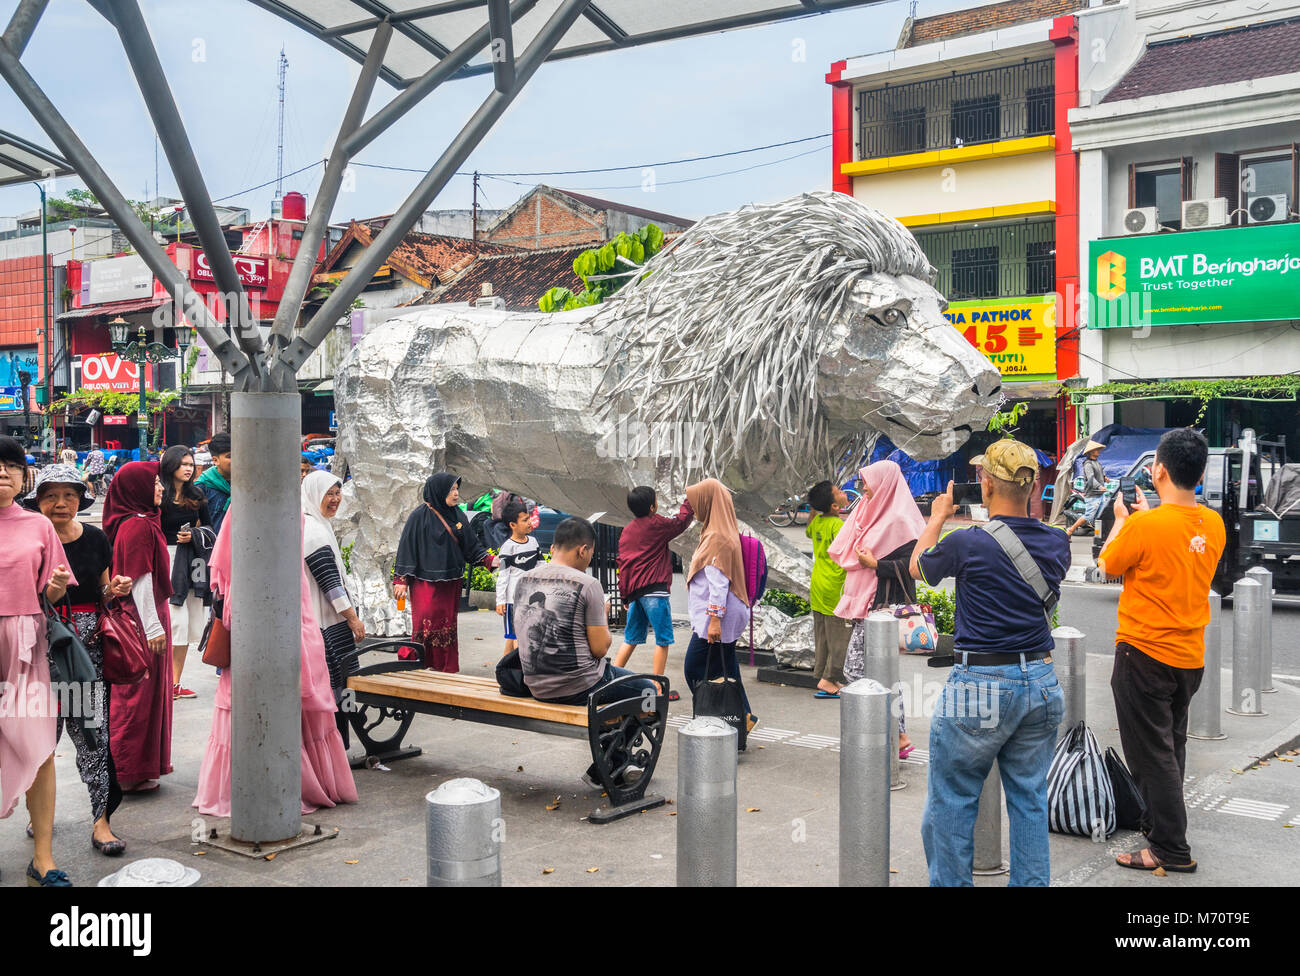 Indonesia, Central Java, Yogyakarta, Aluminium and Steel sculpture of a lion, titled 'Toughness' by local - Stock Image